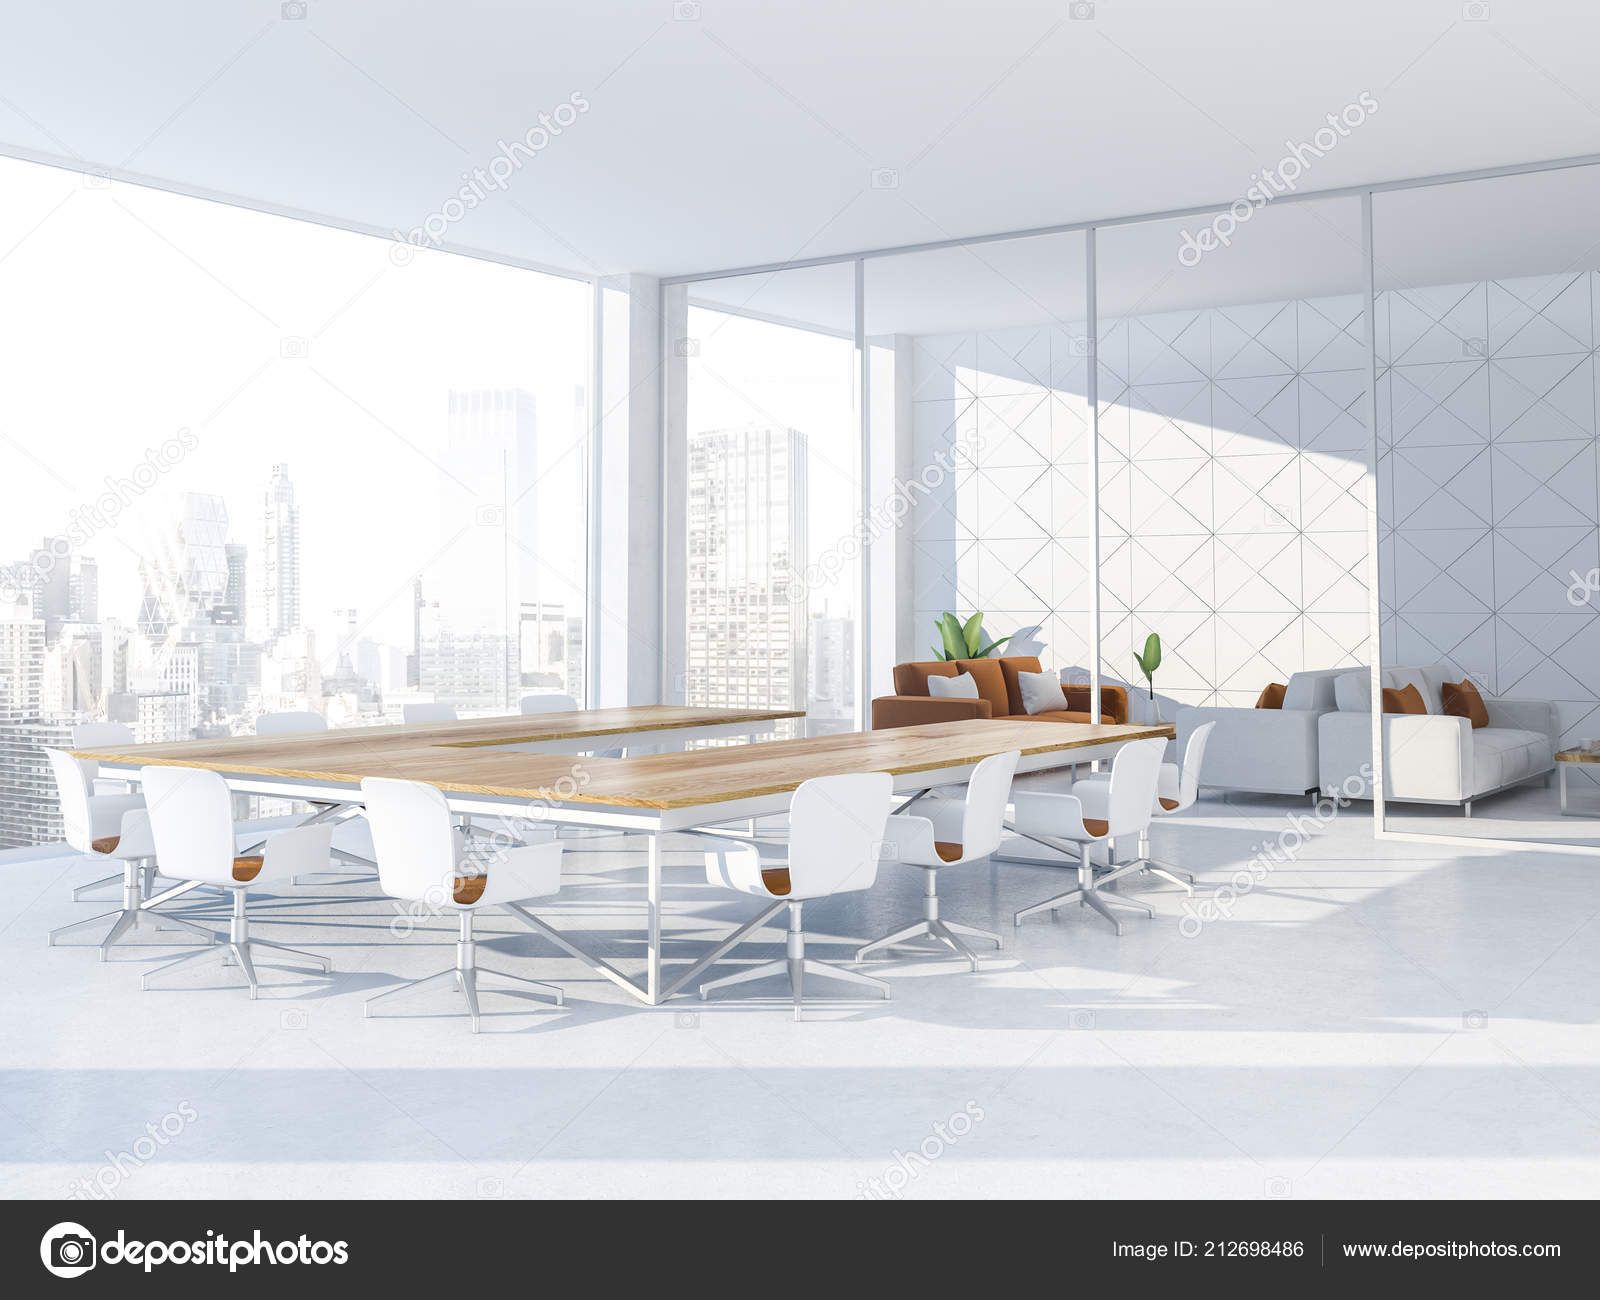 white triangular tiled conference room interior panoramic window